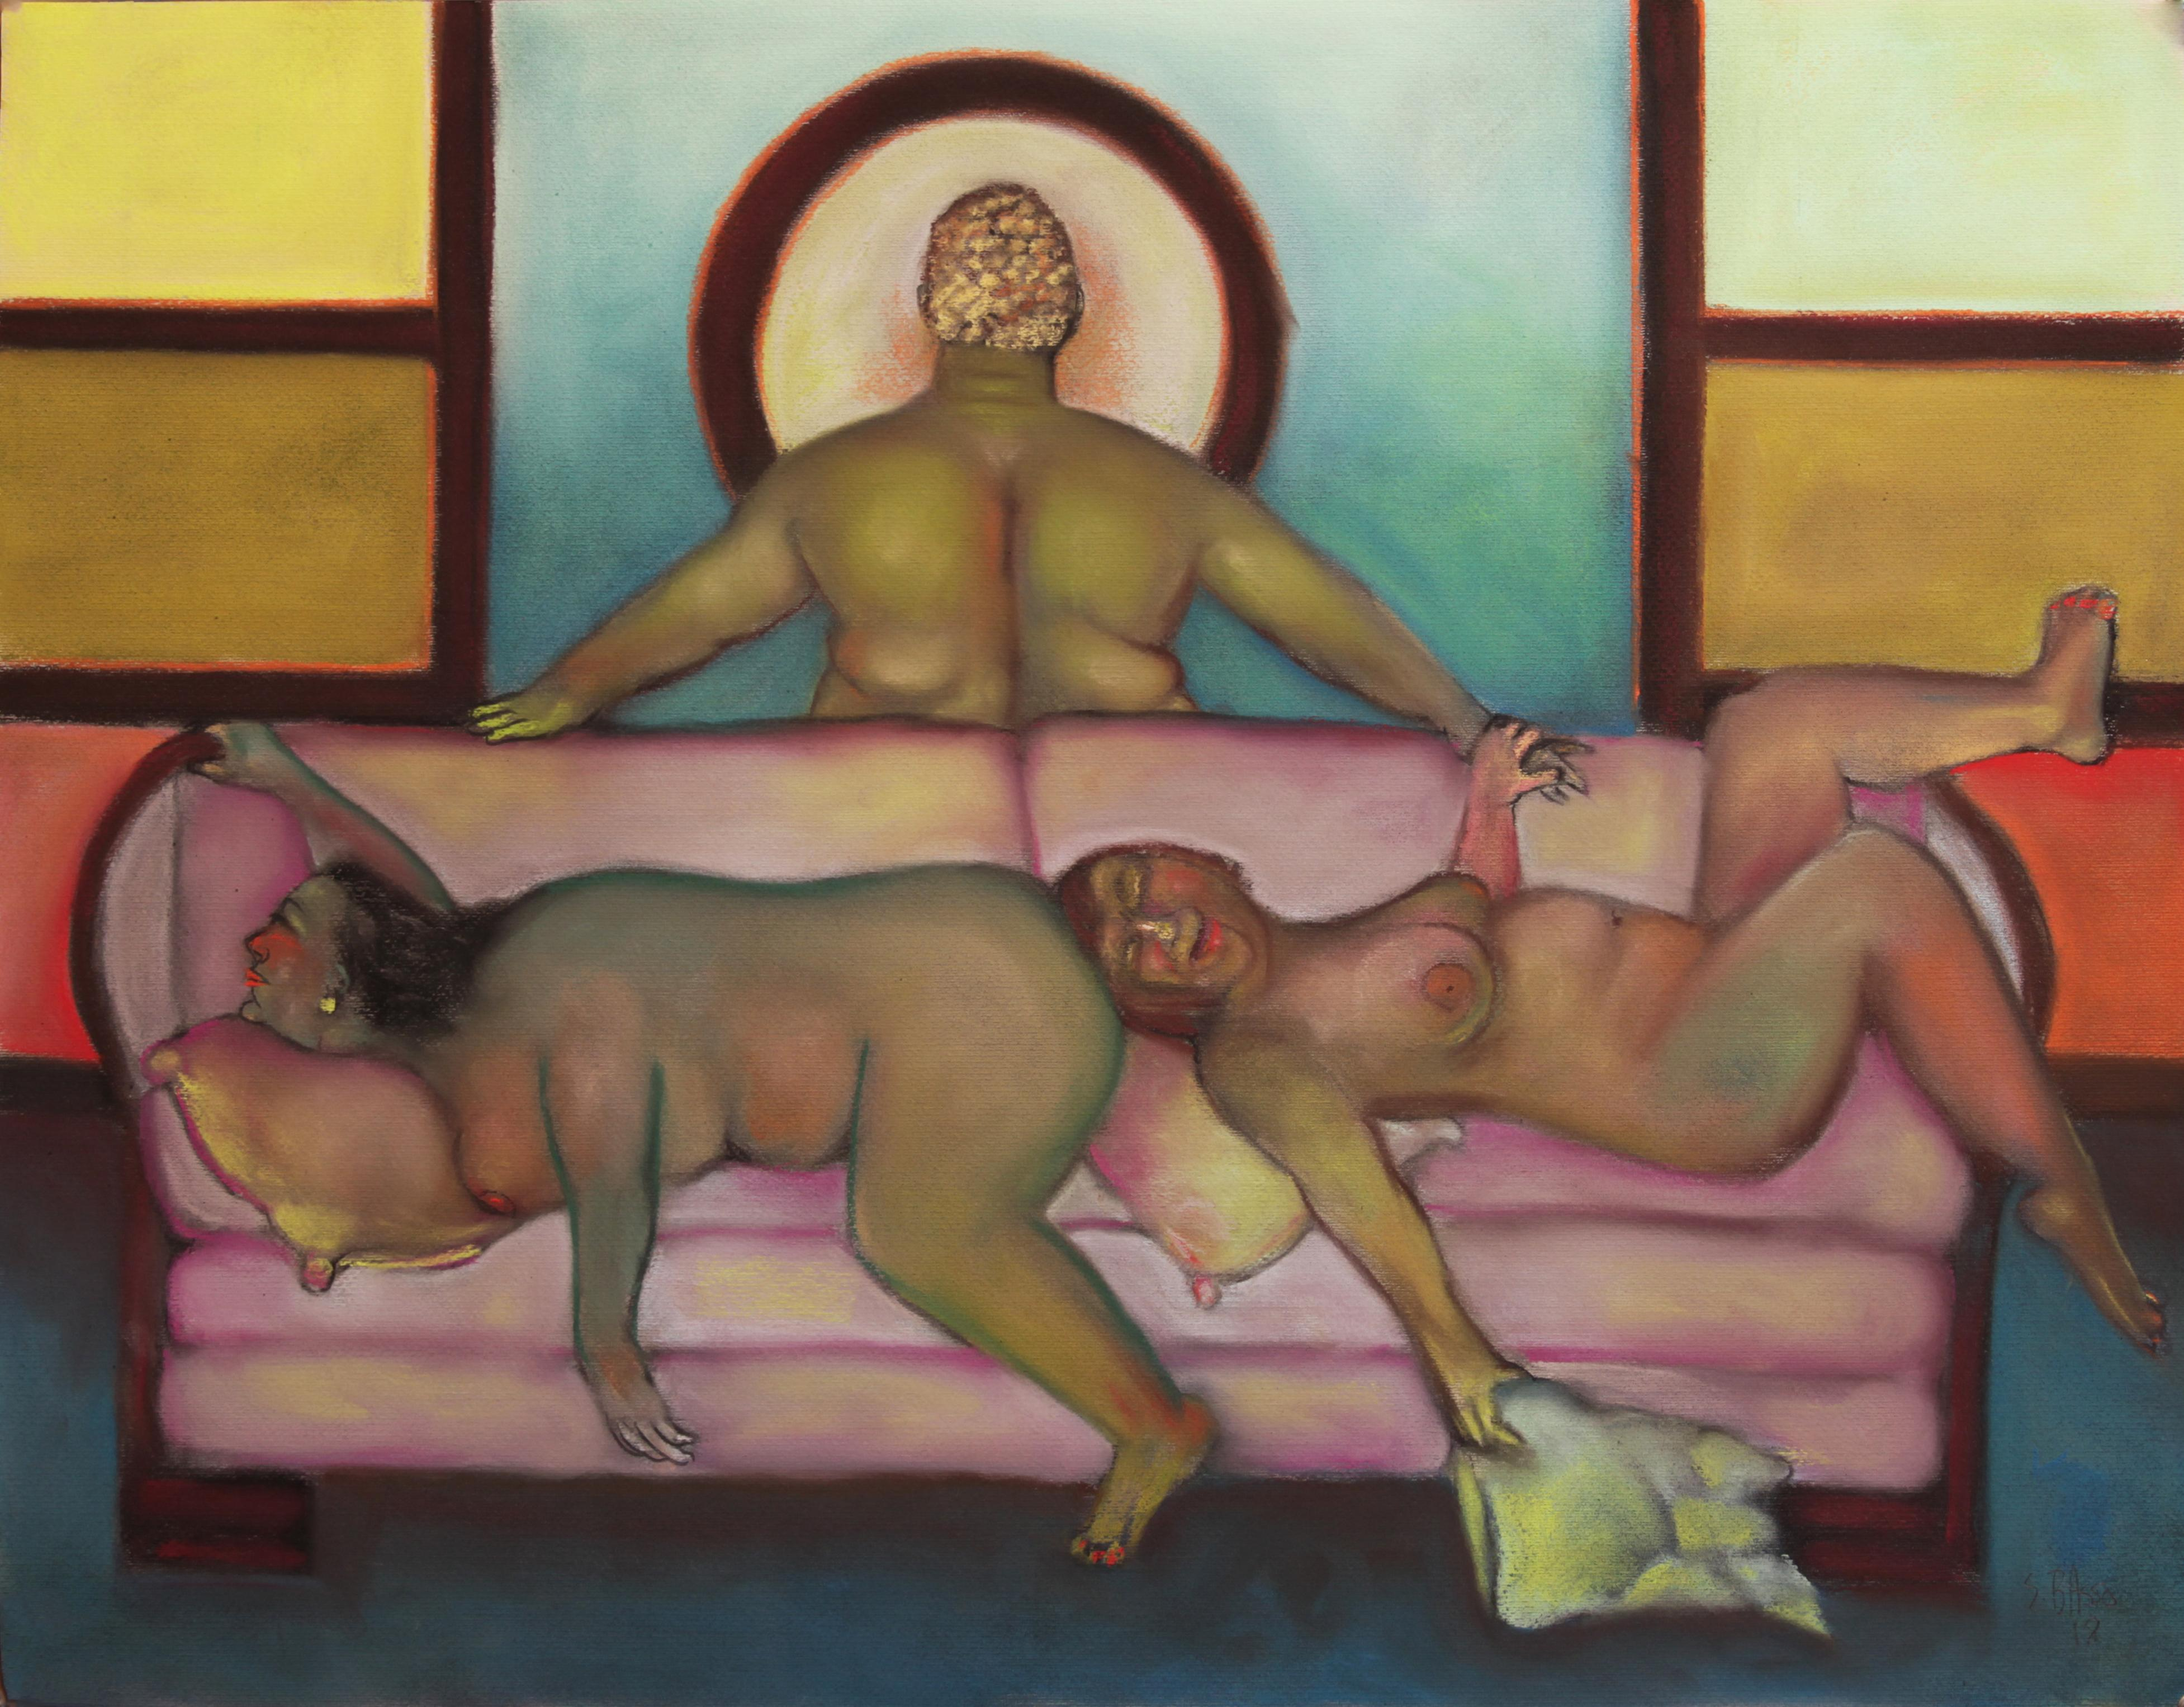 Pillow Fight, colorful humorous nude women